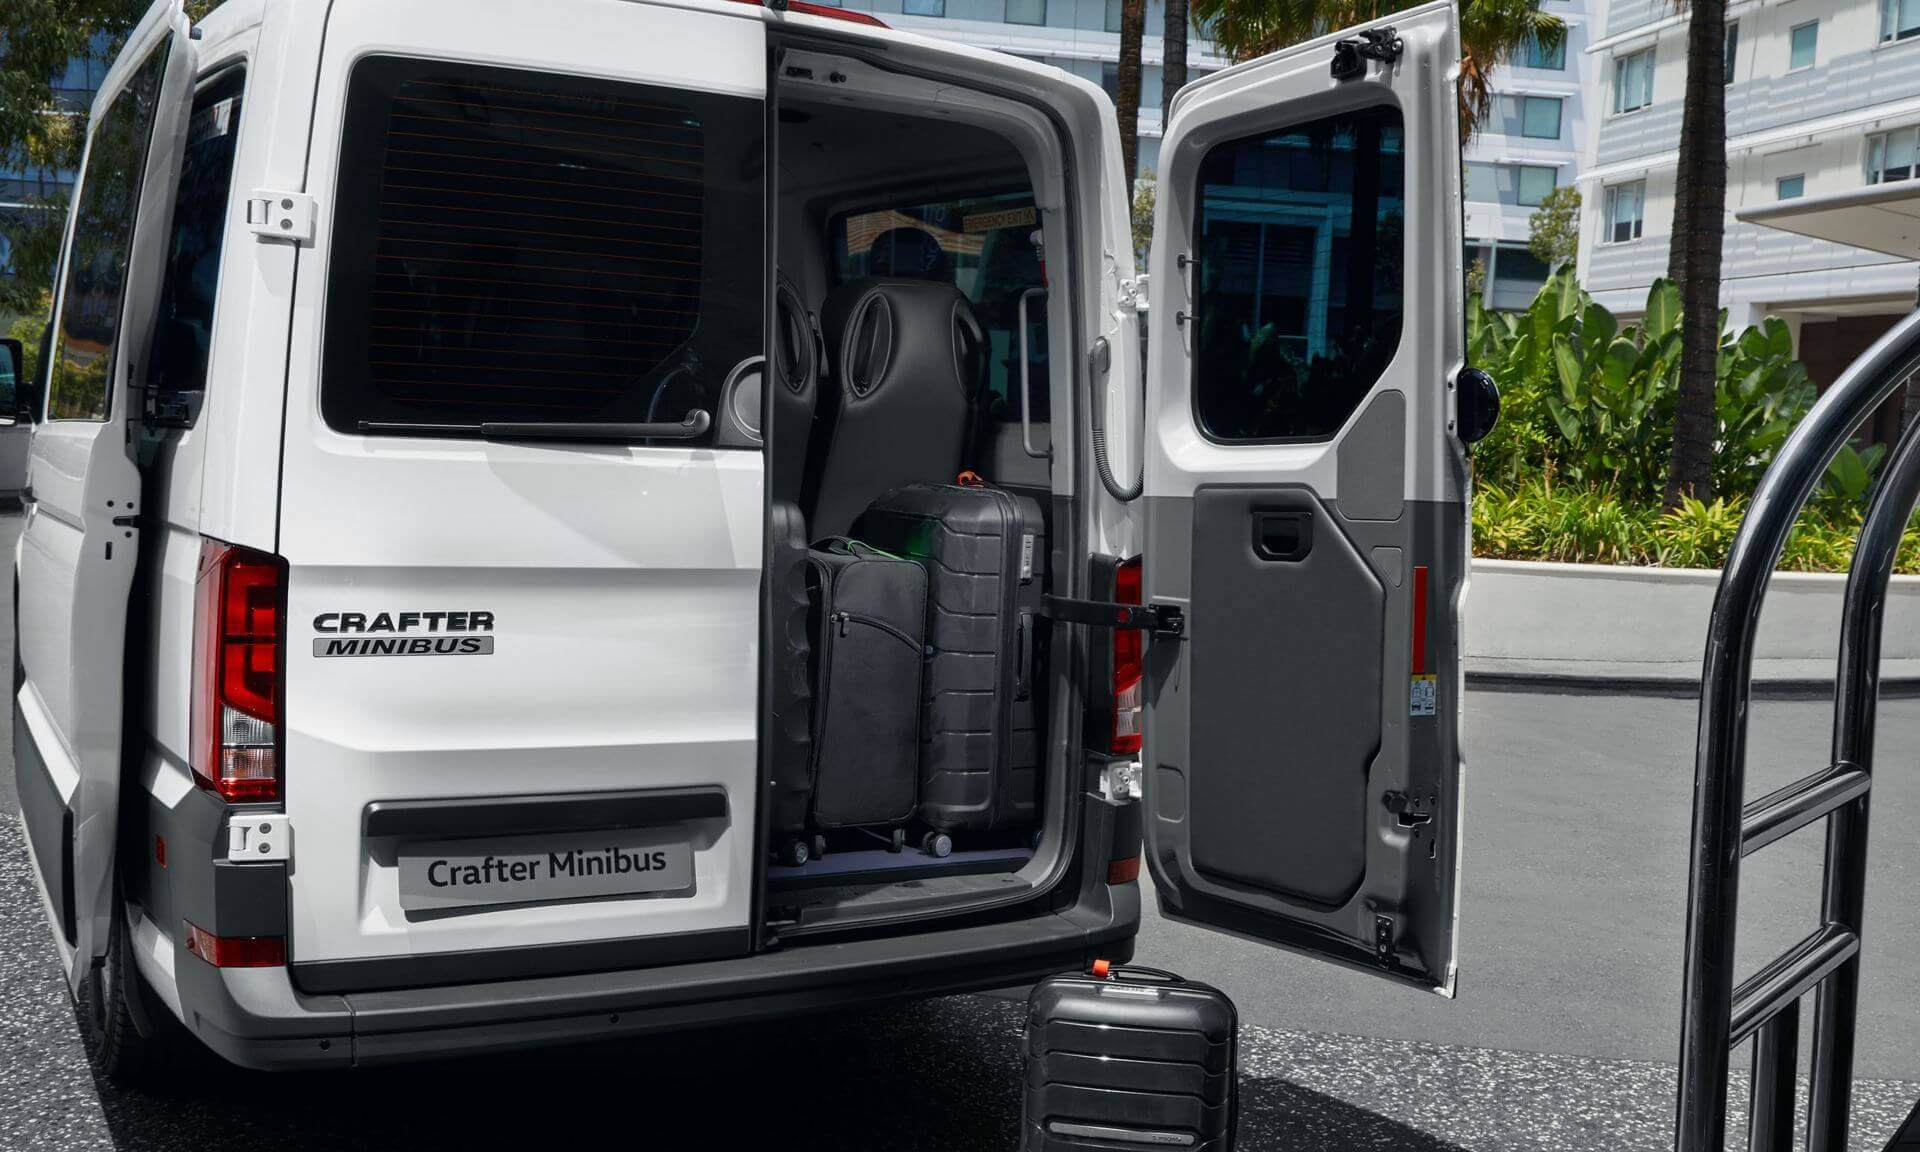 Crafter Minibus Gallery Image 1